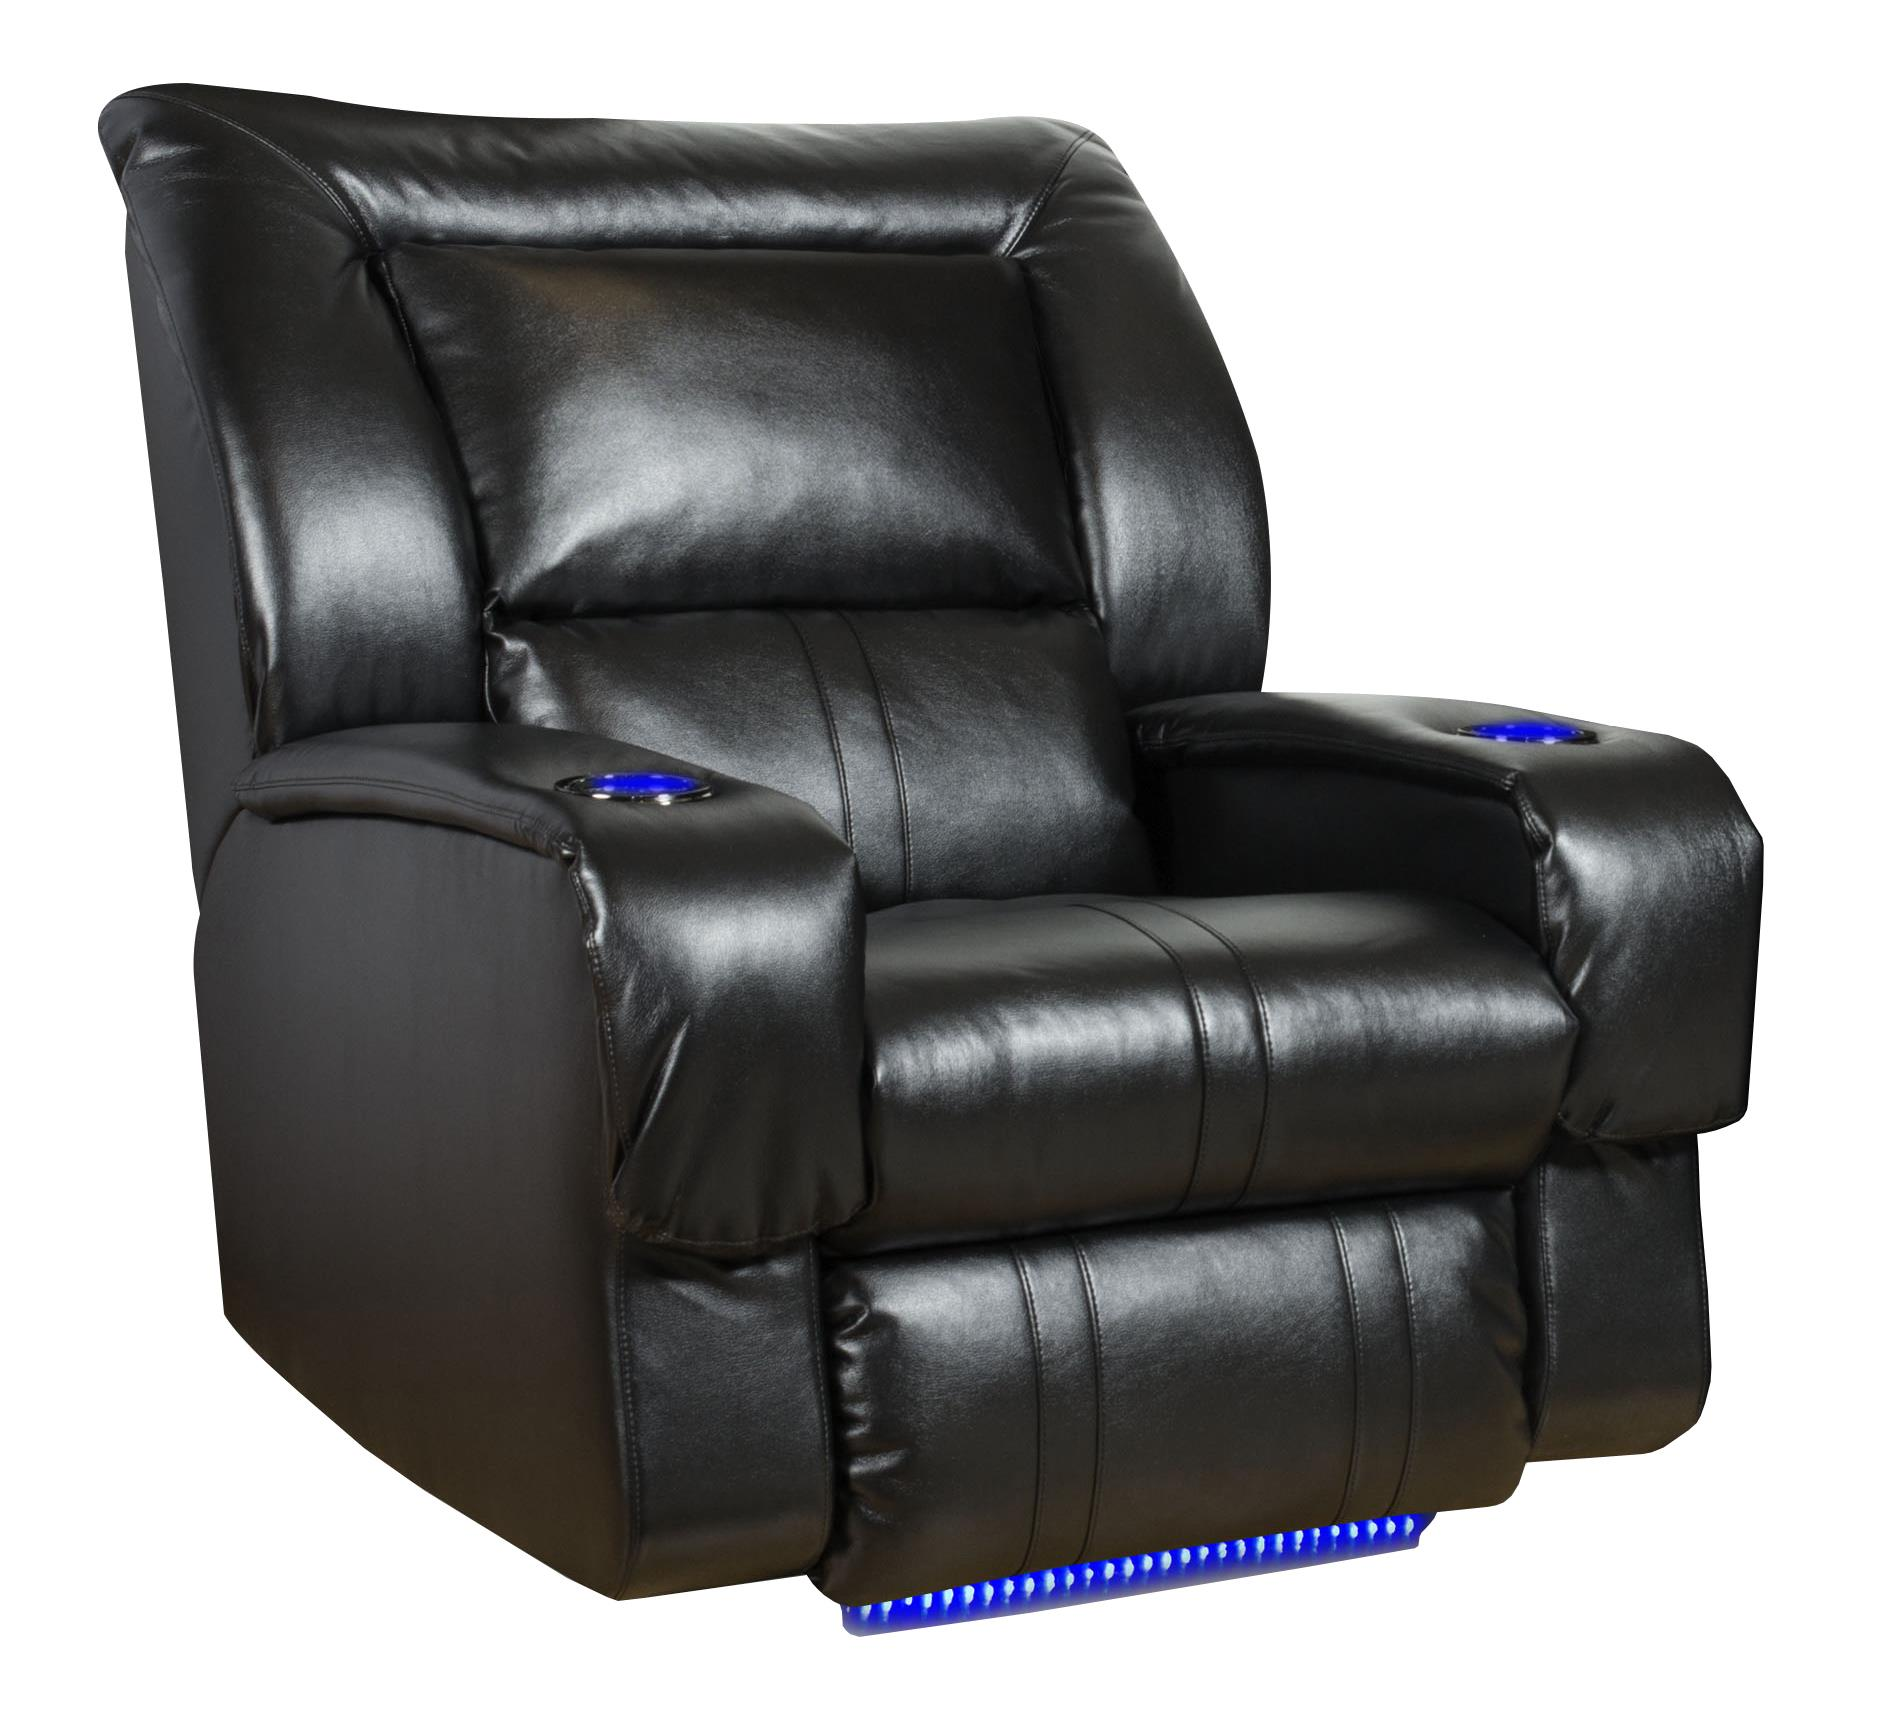 Roxie Wall Hugger Recliner w/ Lights & Cup Holders by Southern Motion at Home Furnishings Direct